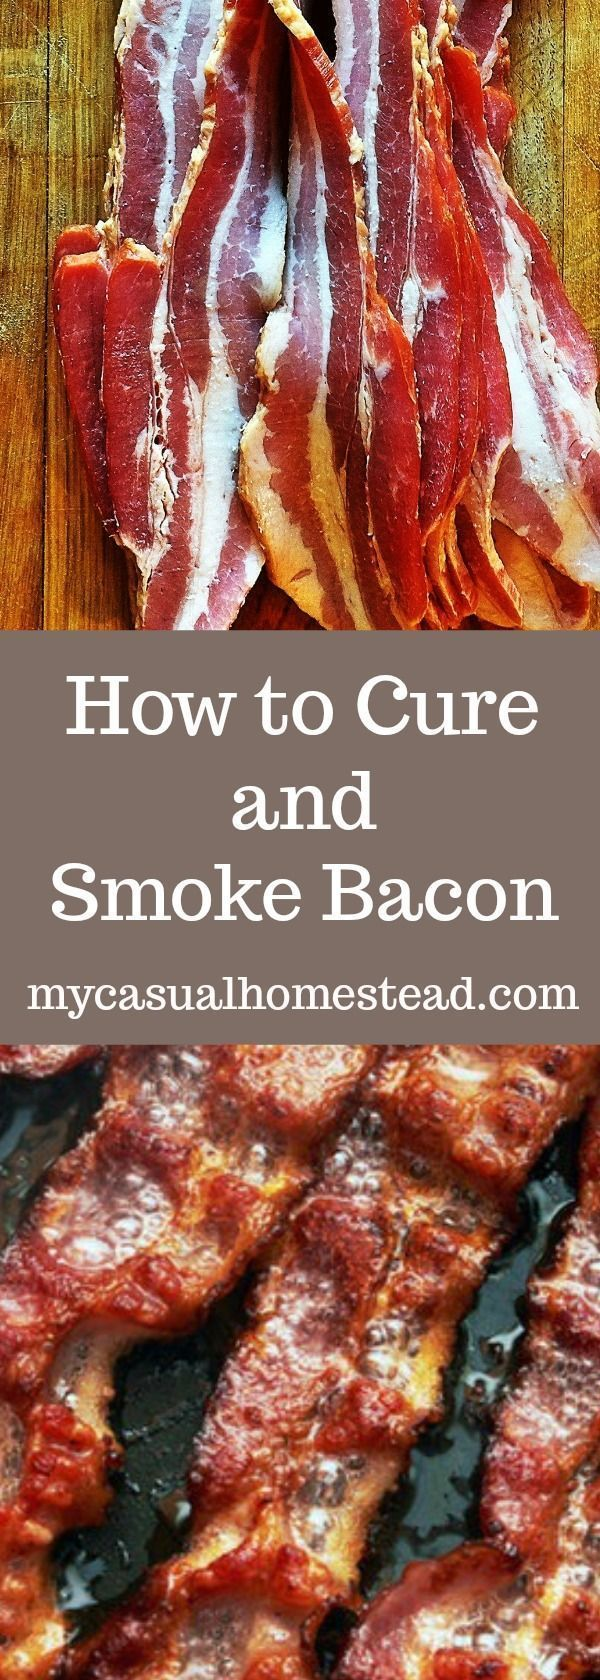 How to make your own bacon!